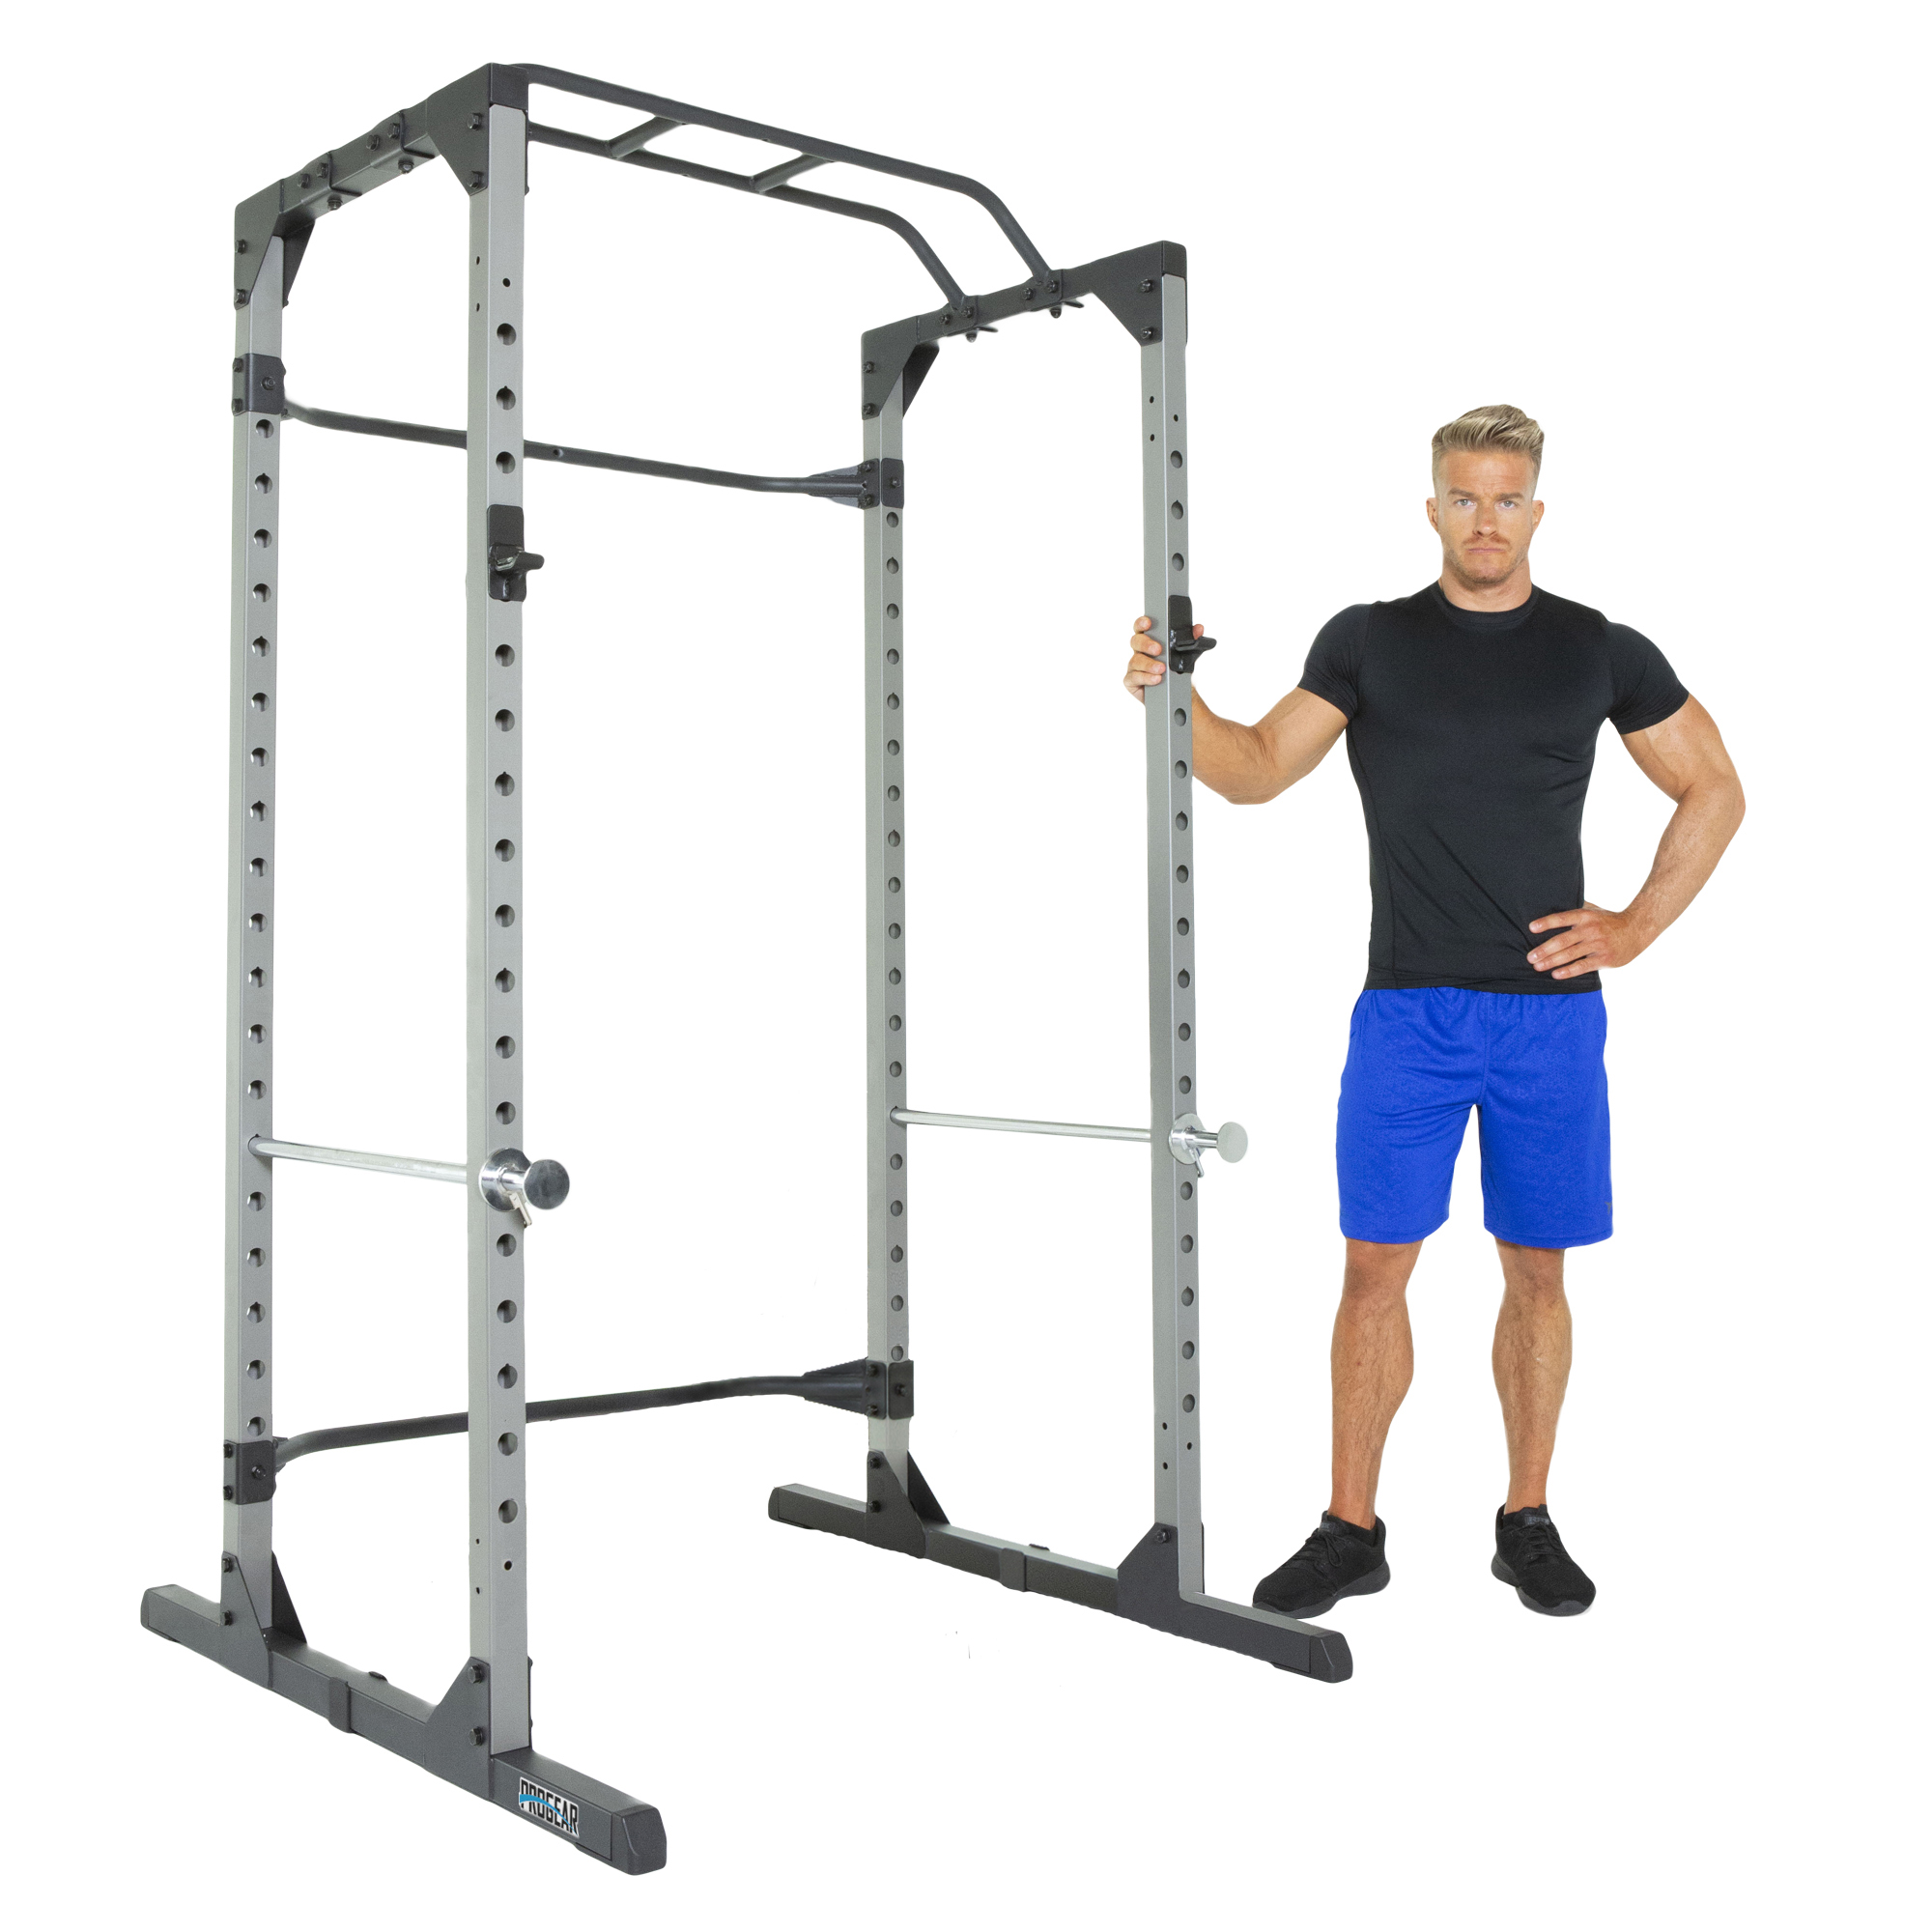 Progear 1600 Ultra Strength 800lb Weight Capacity Power Rack Cage with Lock-in J-Hooks